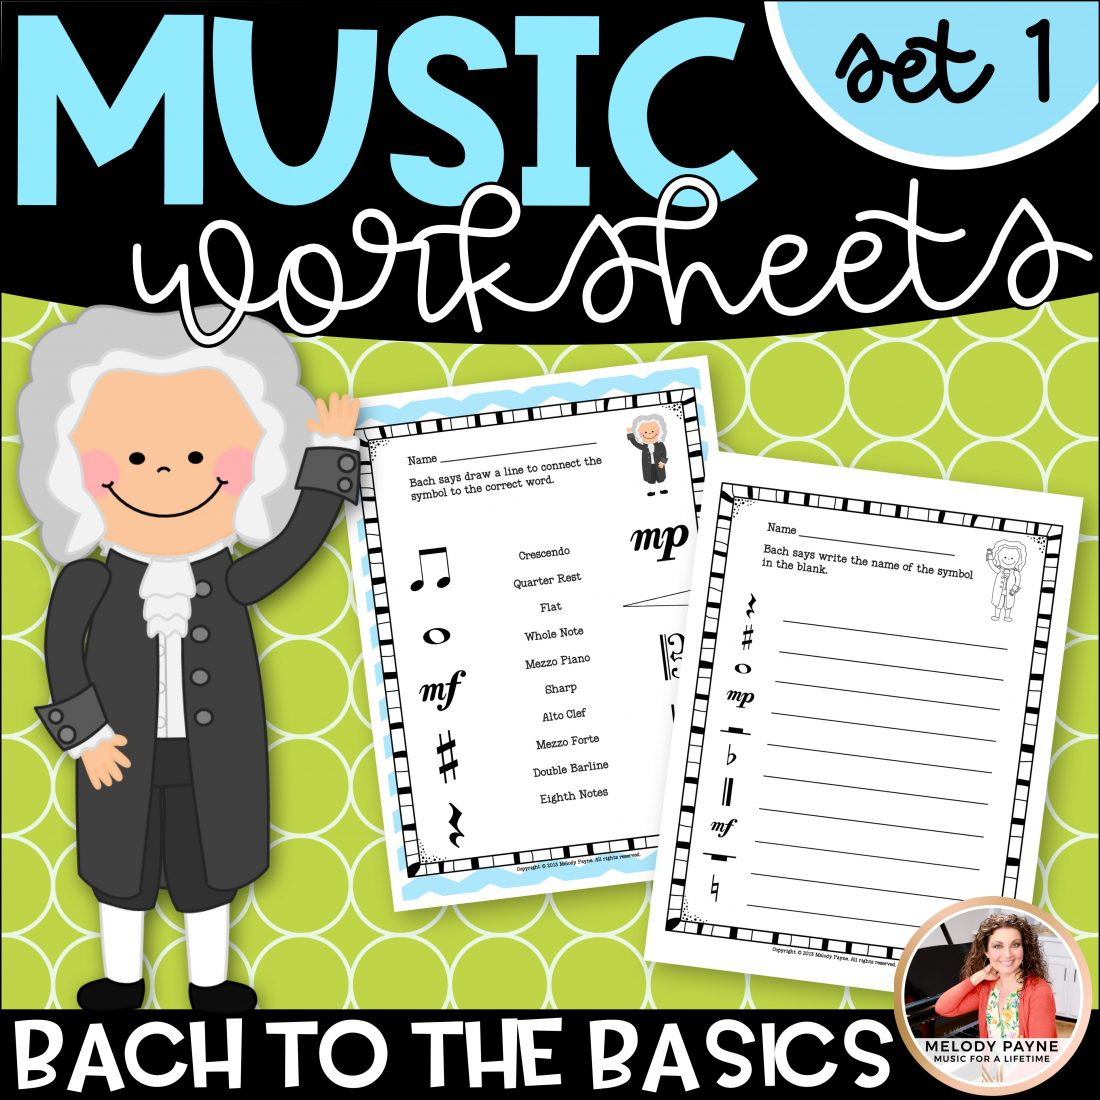 Music Worksheets For Elementary Students Bach To The